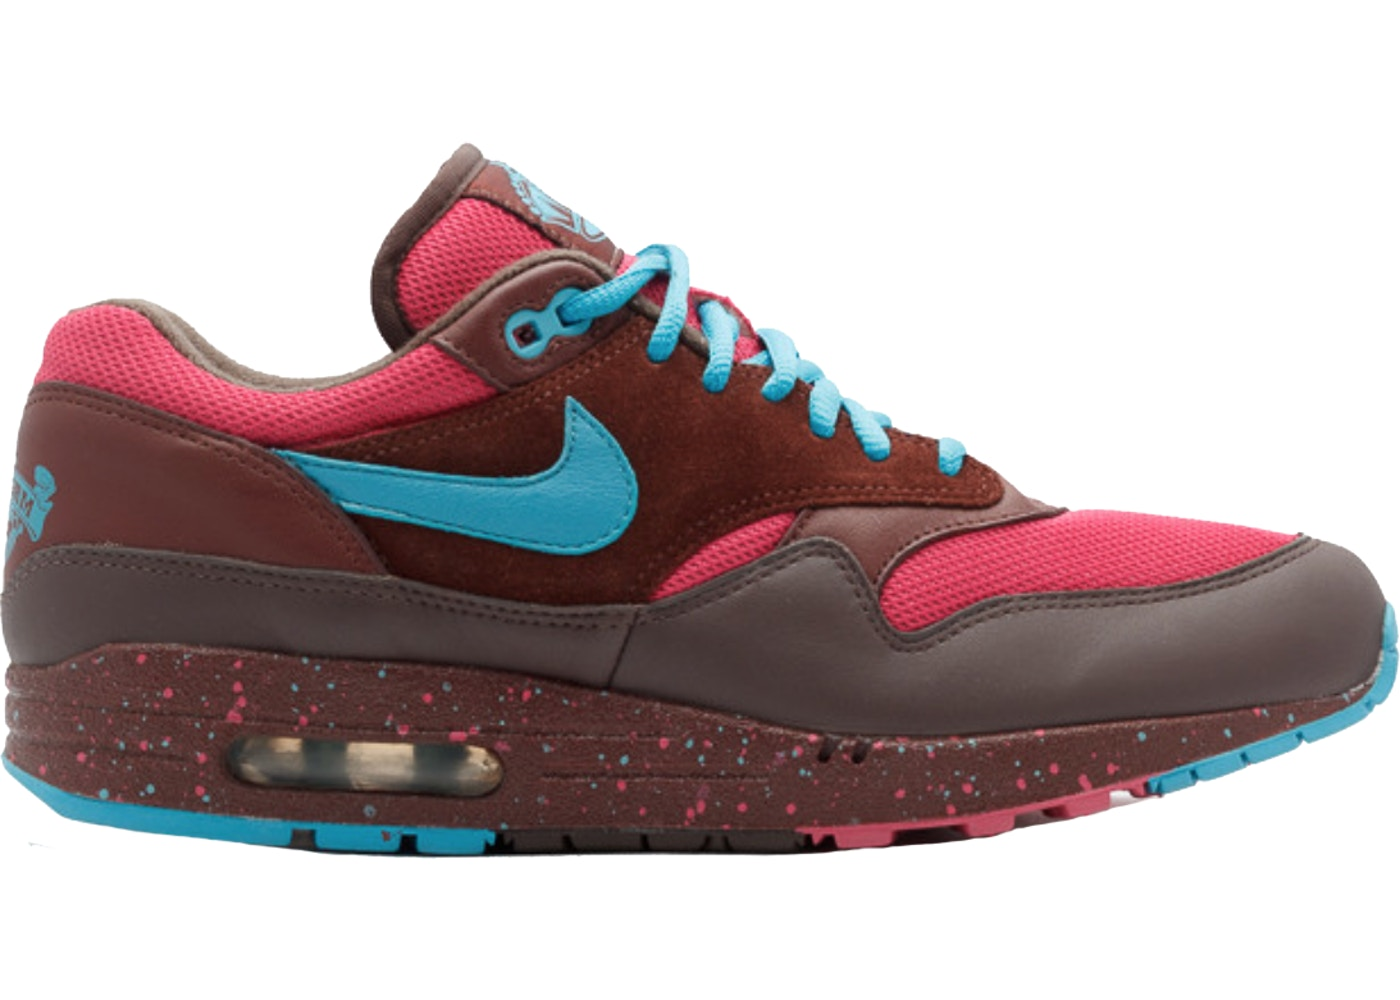 e05c628d27629 Buy Nike Air Max 1 Shoes & Deadstock Sneakers